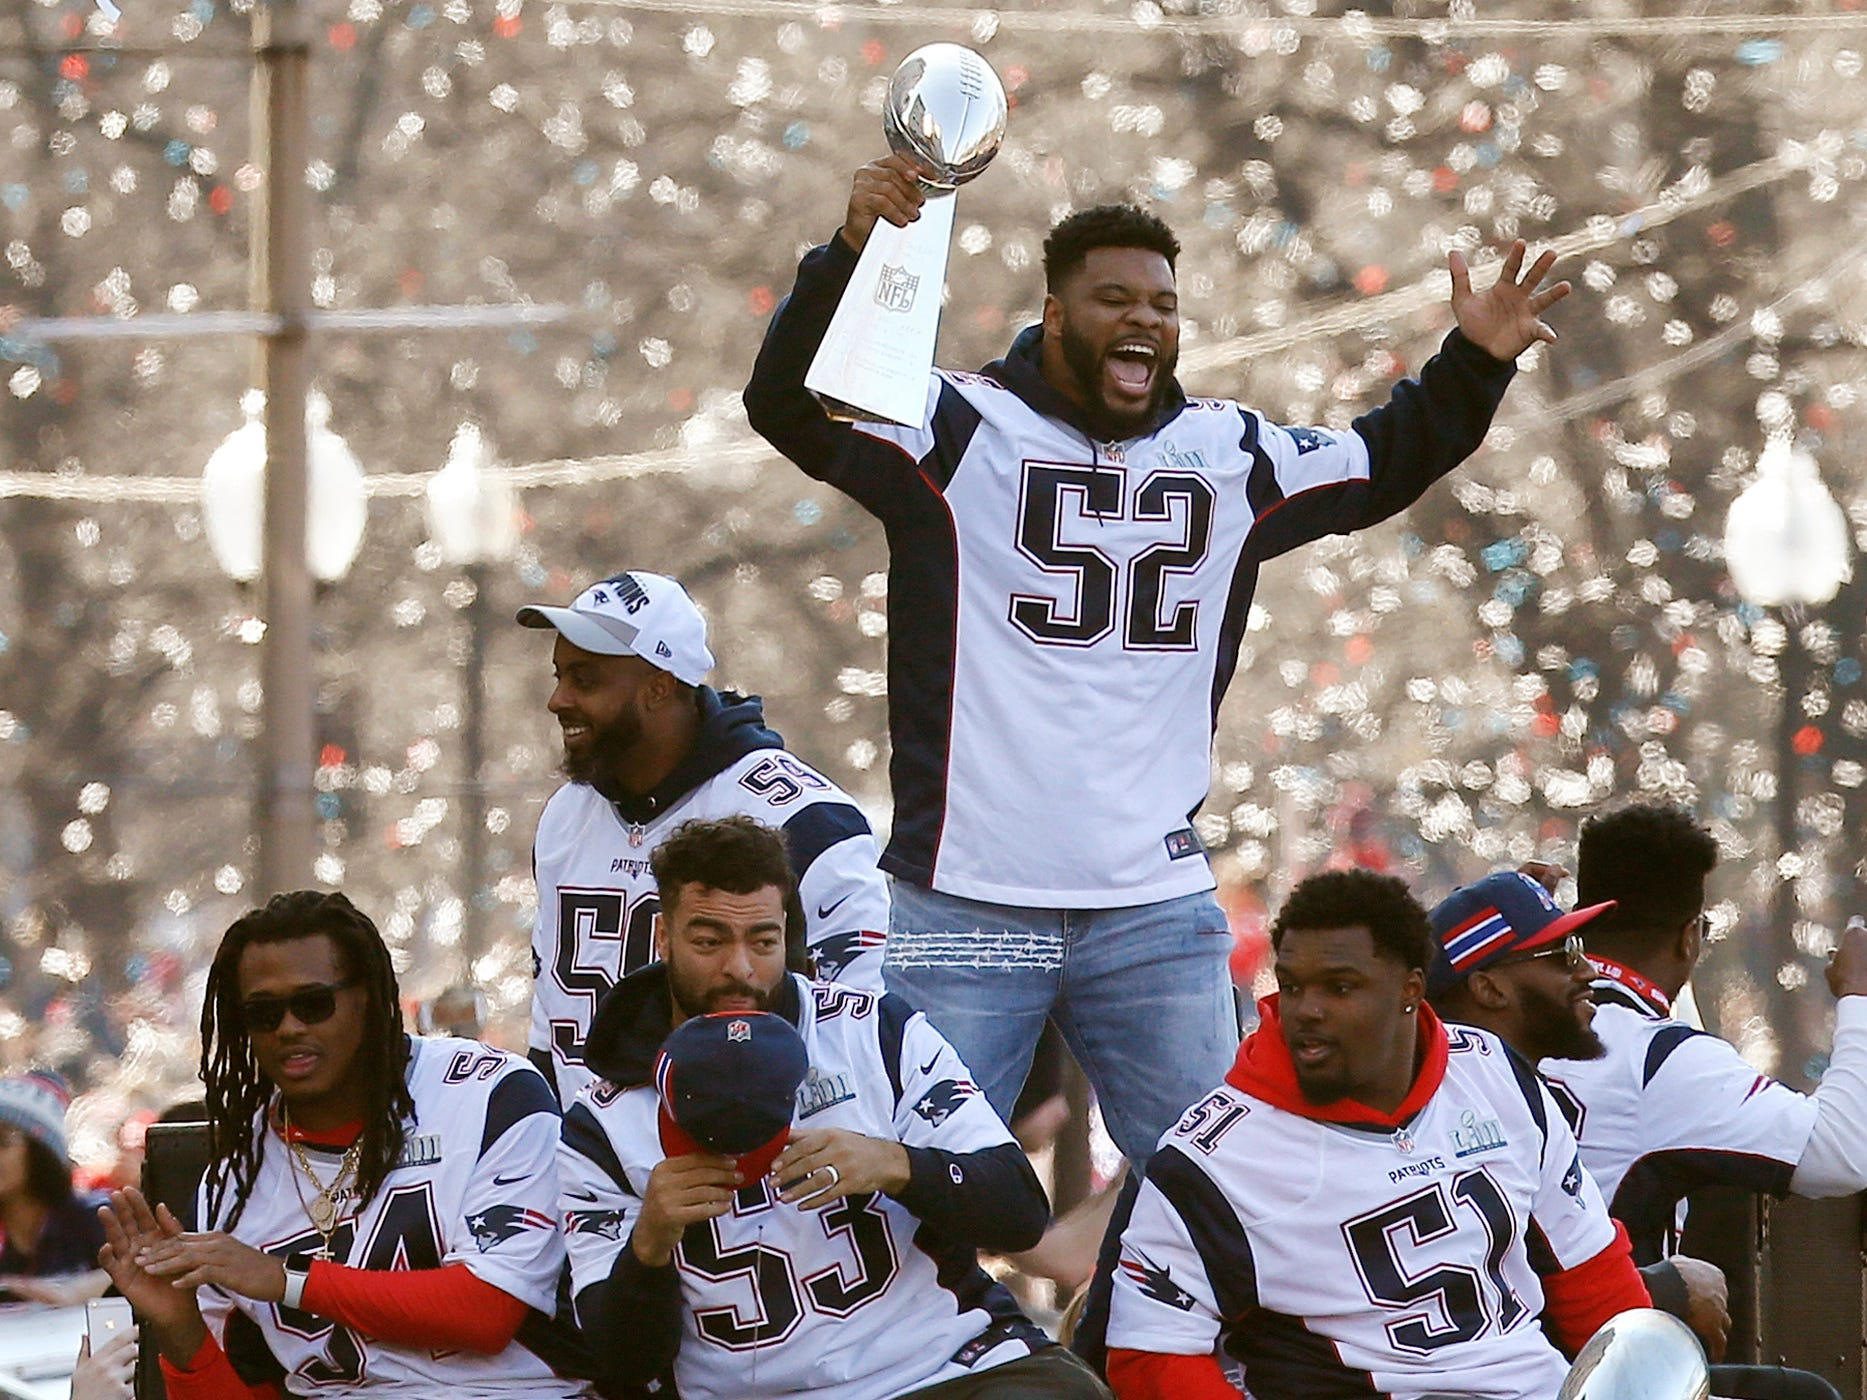 New England Patriots linebacker Elandon Roberts (52) rides a duck boat during the Patriots parade through downtown Boston, Tuesday, Feb. 5, 2019, to celebrate their win over the Los Angeles Rams in Sunday's Super Bowl LIII game in Atlanta.